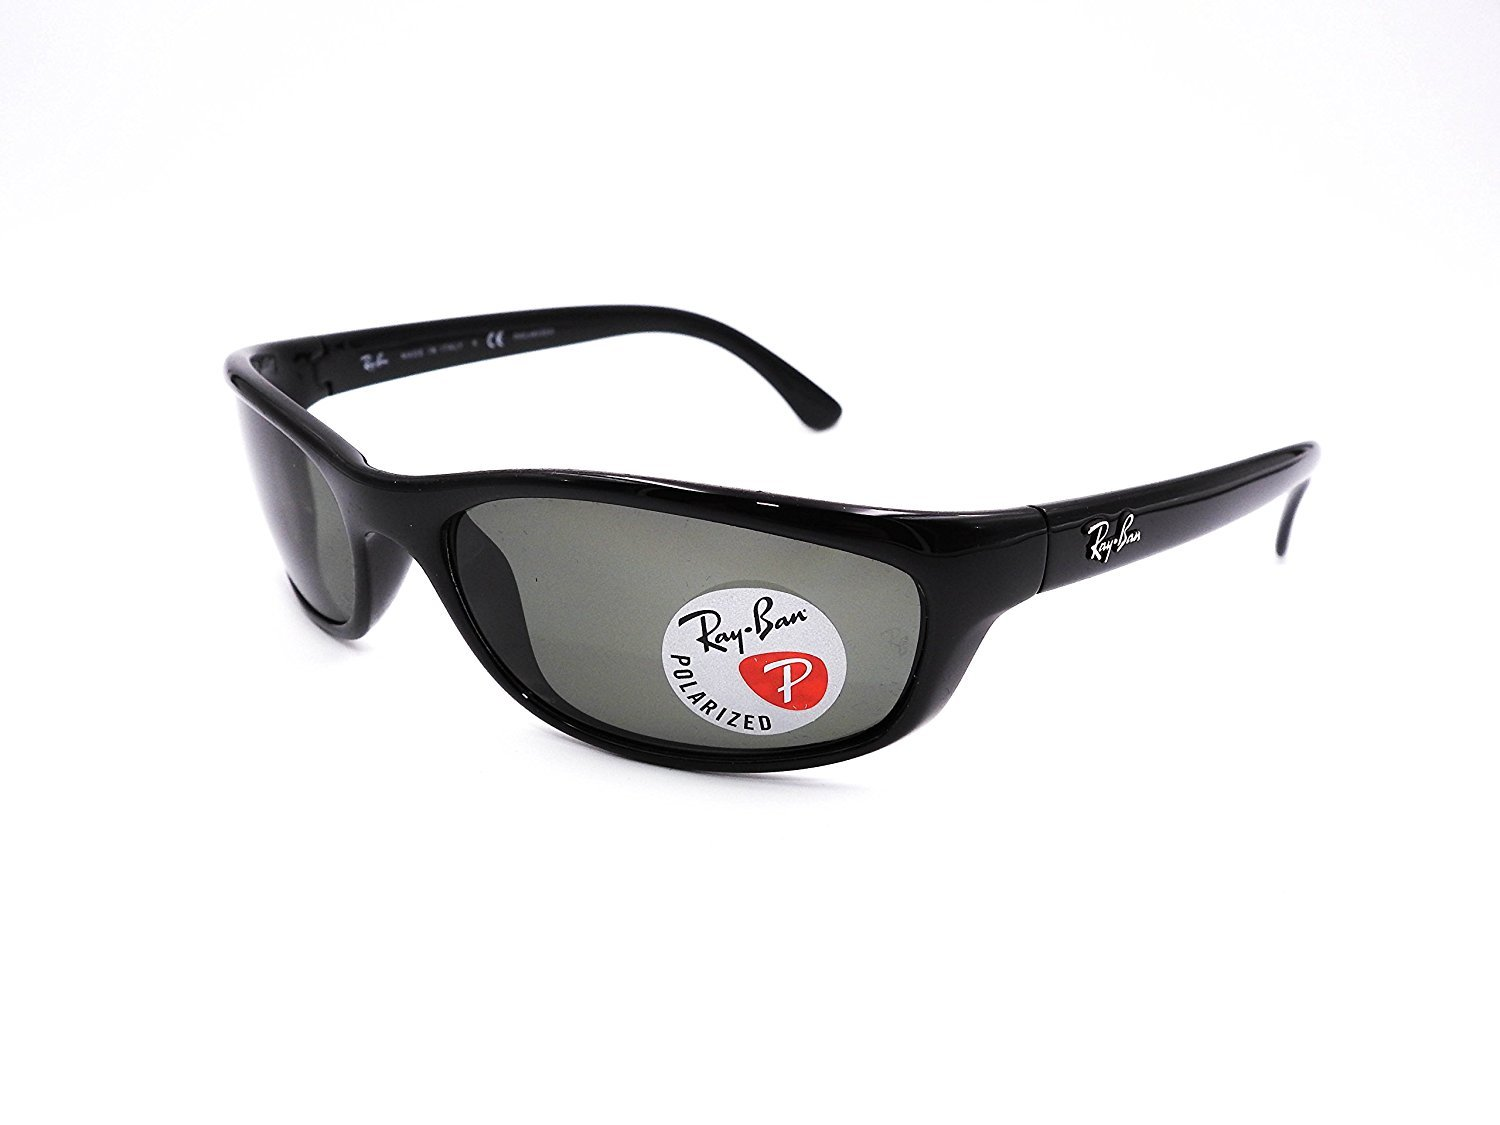 43a66f697d Ray-Ban fast   furious sunglasses RB 4115 and 29 similar items.  71ktlxo3ool. ul1500